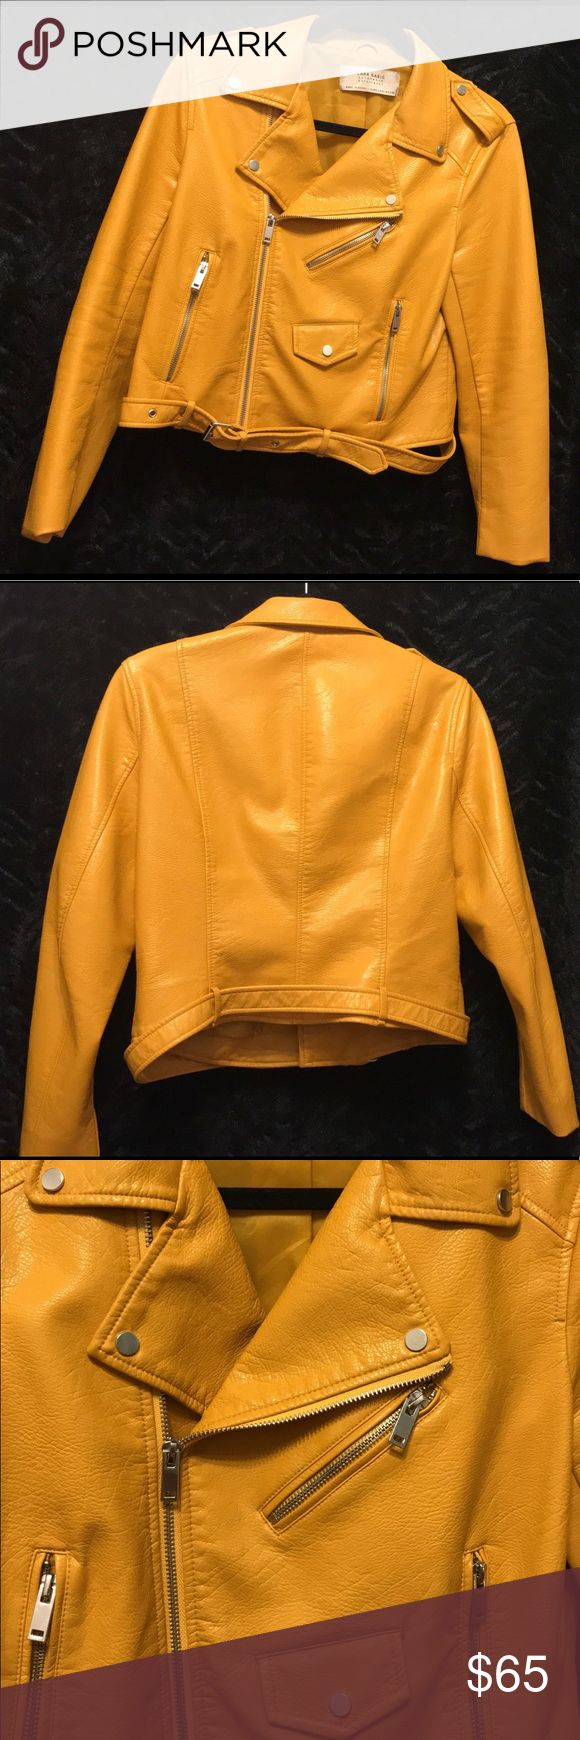 Zara Biker Faux Leather Jacket - Good condition - Size L - Mustard Yellow - Women/Men - Outer Material: 88% Viscose, 12% Polyester - Coating: 100% Polyurethane  - Lining: 100% Polyester - Zara SS16  Accepting offers • No trades • All sales final   Comment below if you have any questions. Zara Jackets & Coats